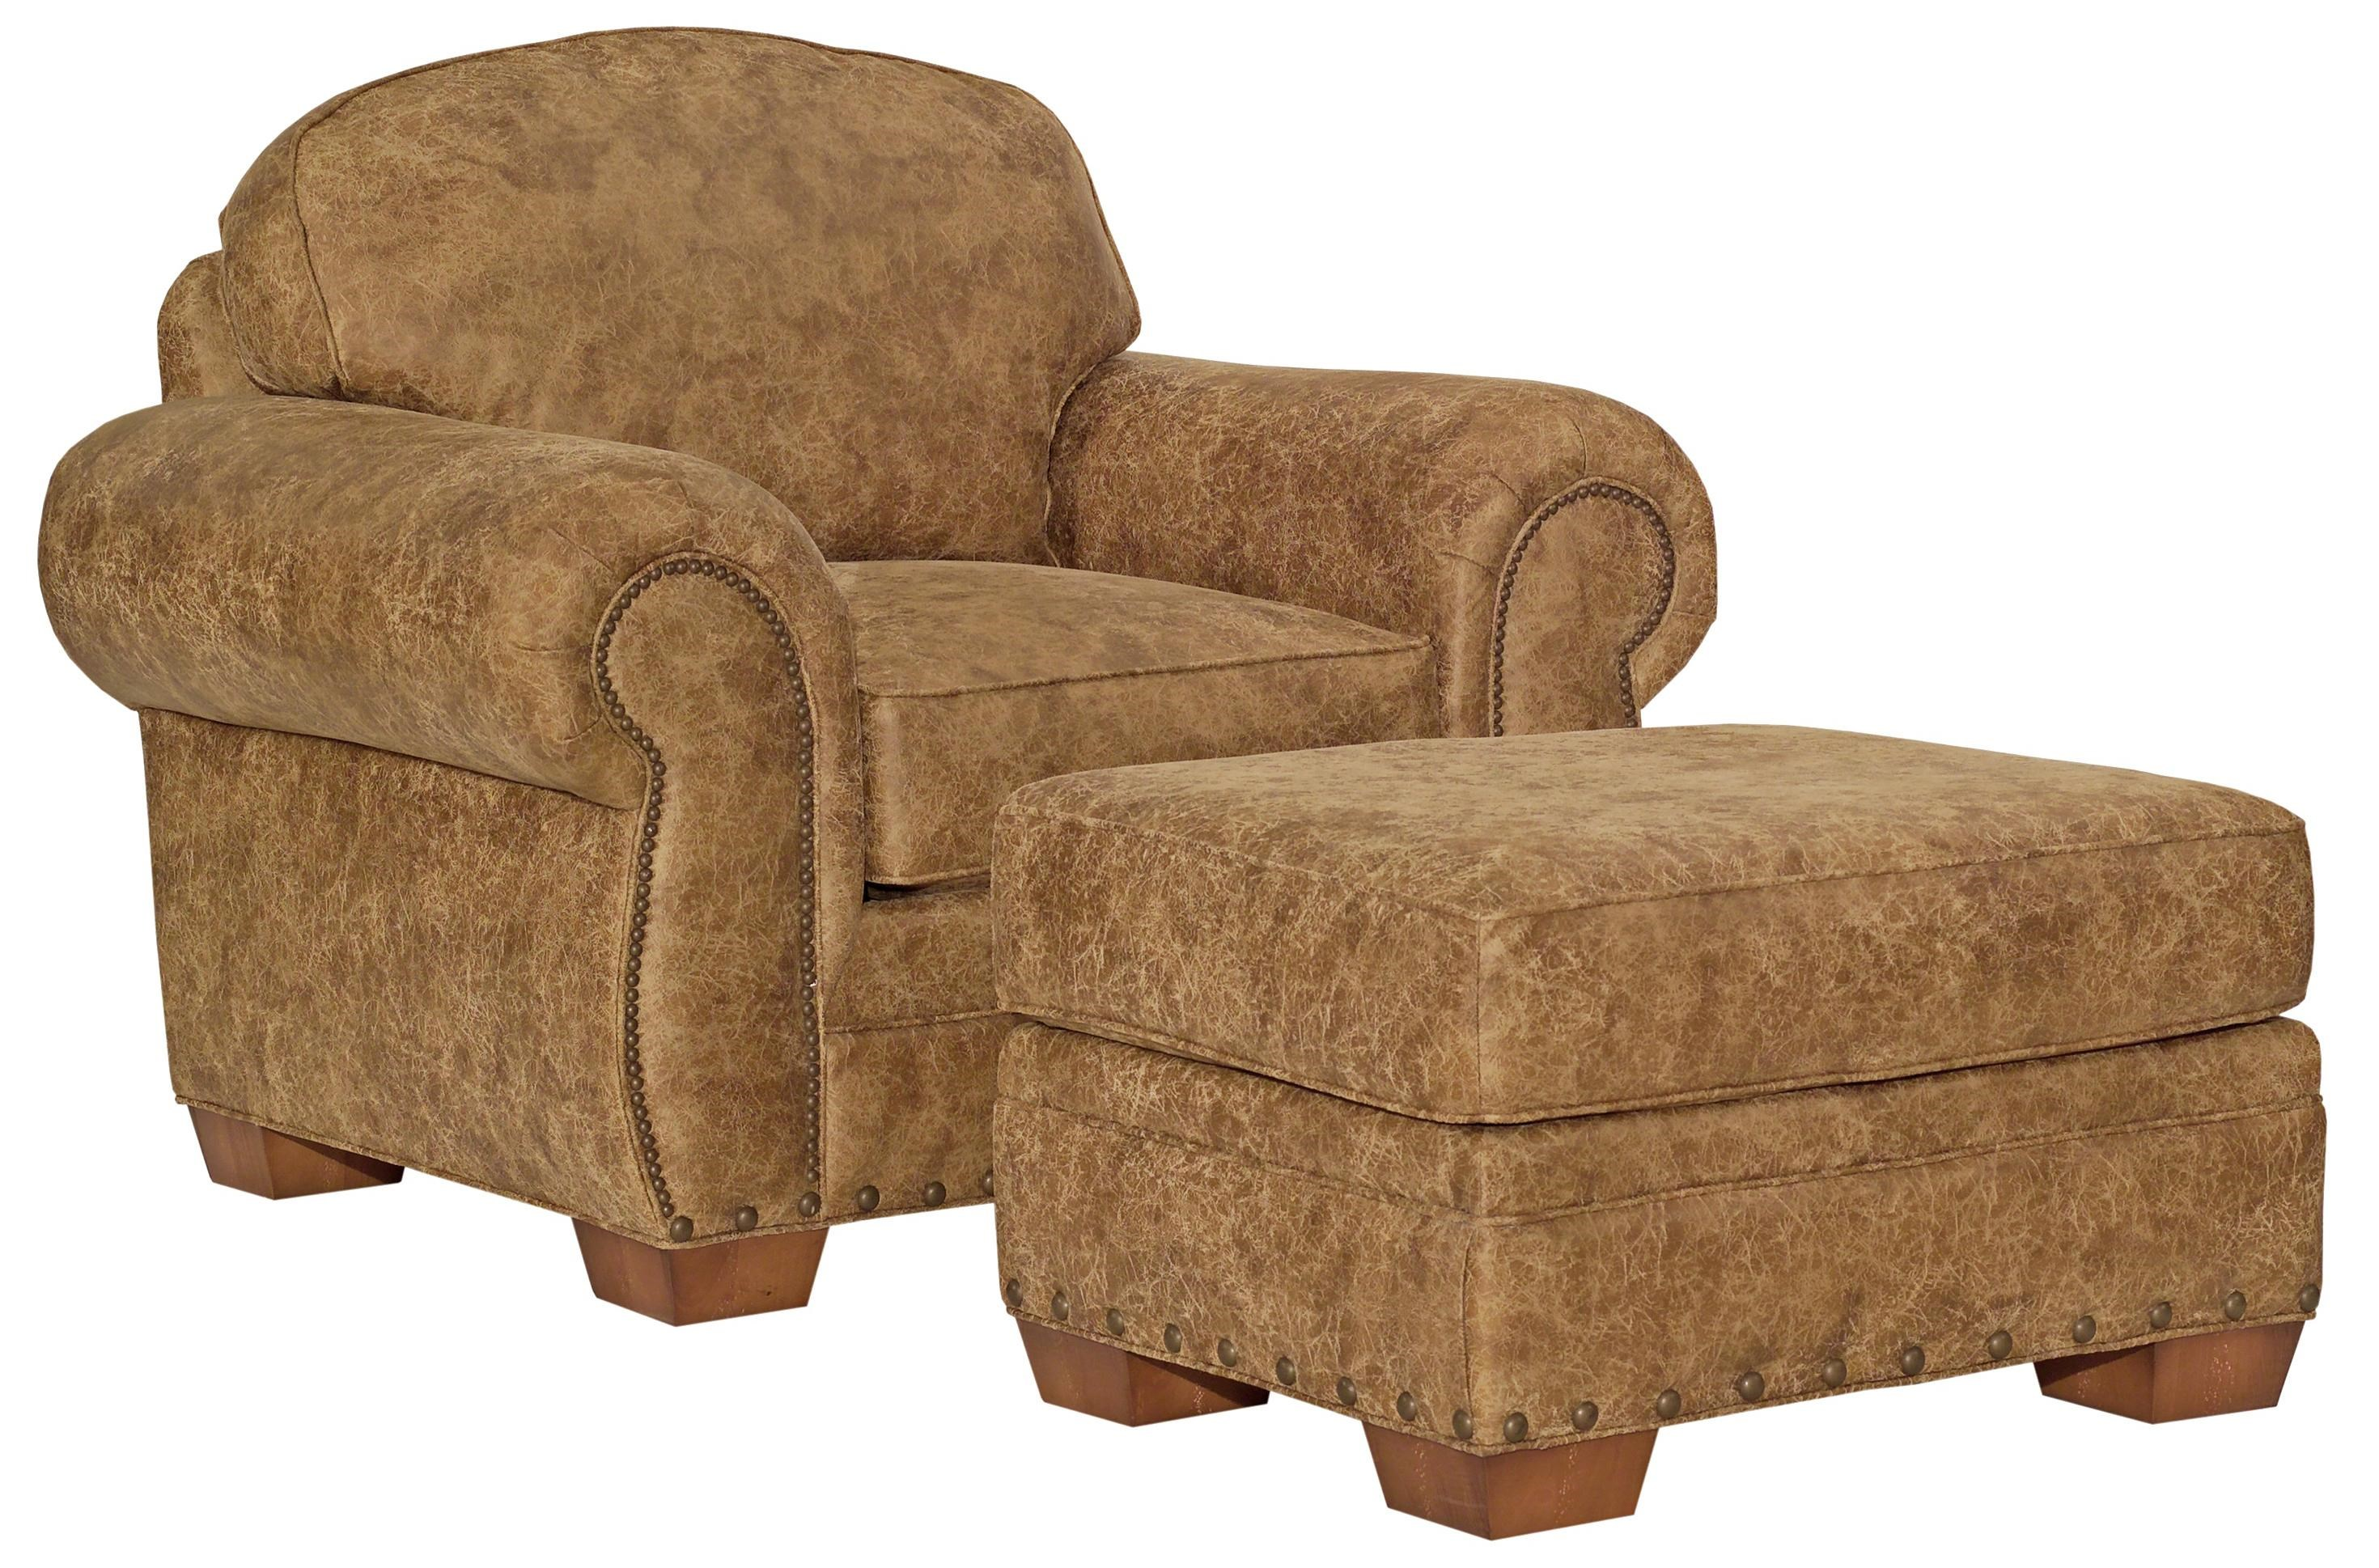 Broyhill Furniture Cambridge Casual Style Chair And